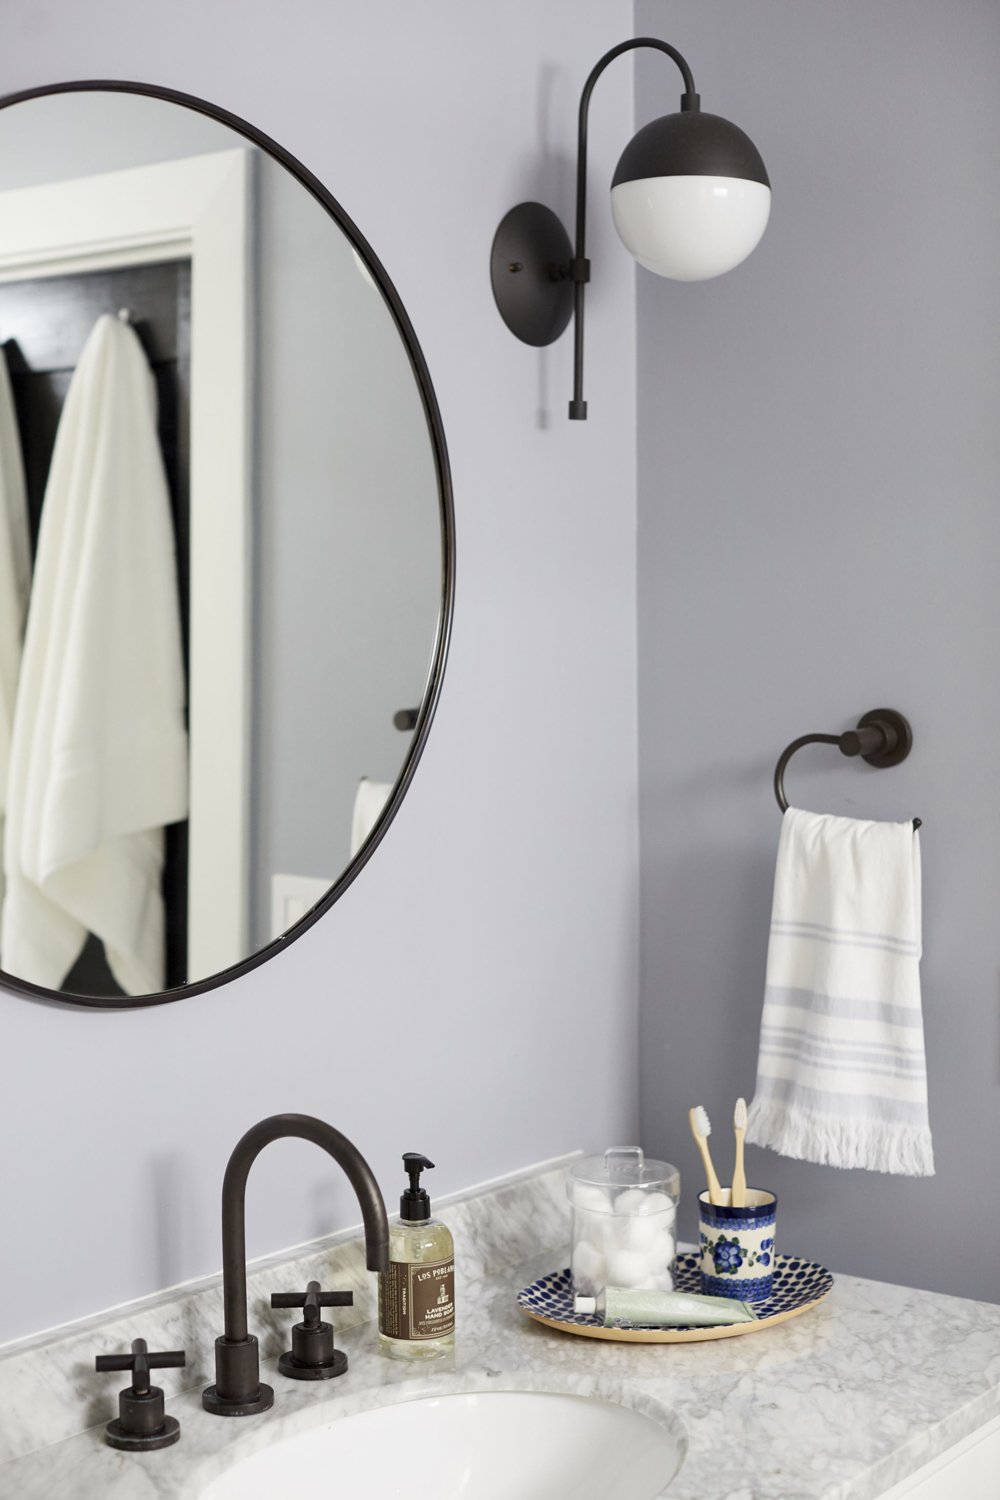 Ginny_Macdonald_Bathroom_Design_Modern-Traditional_Full-Service_02_1000px